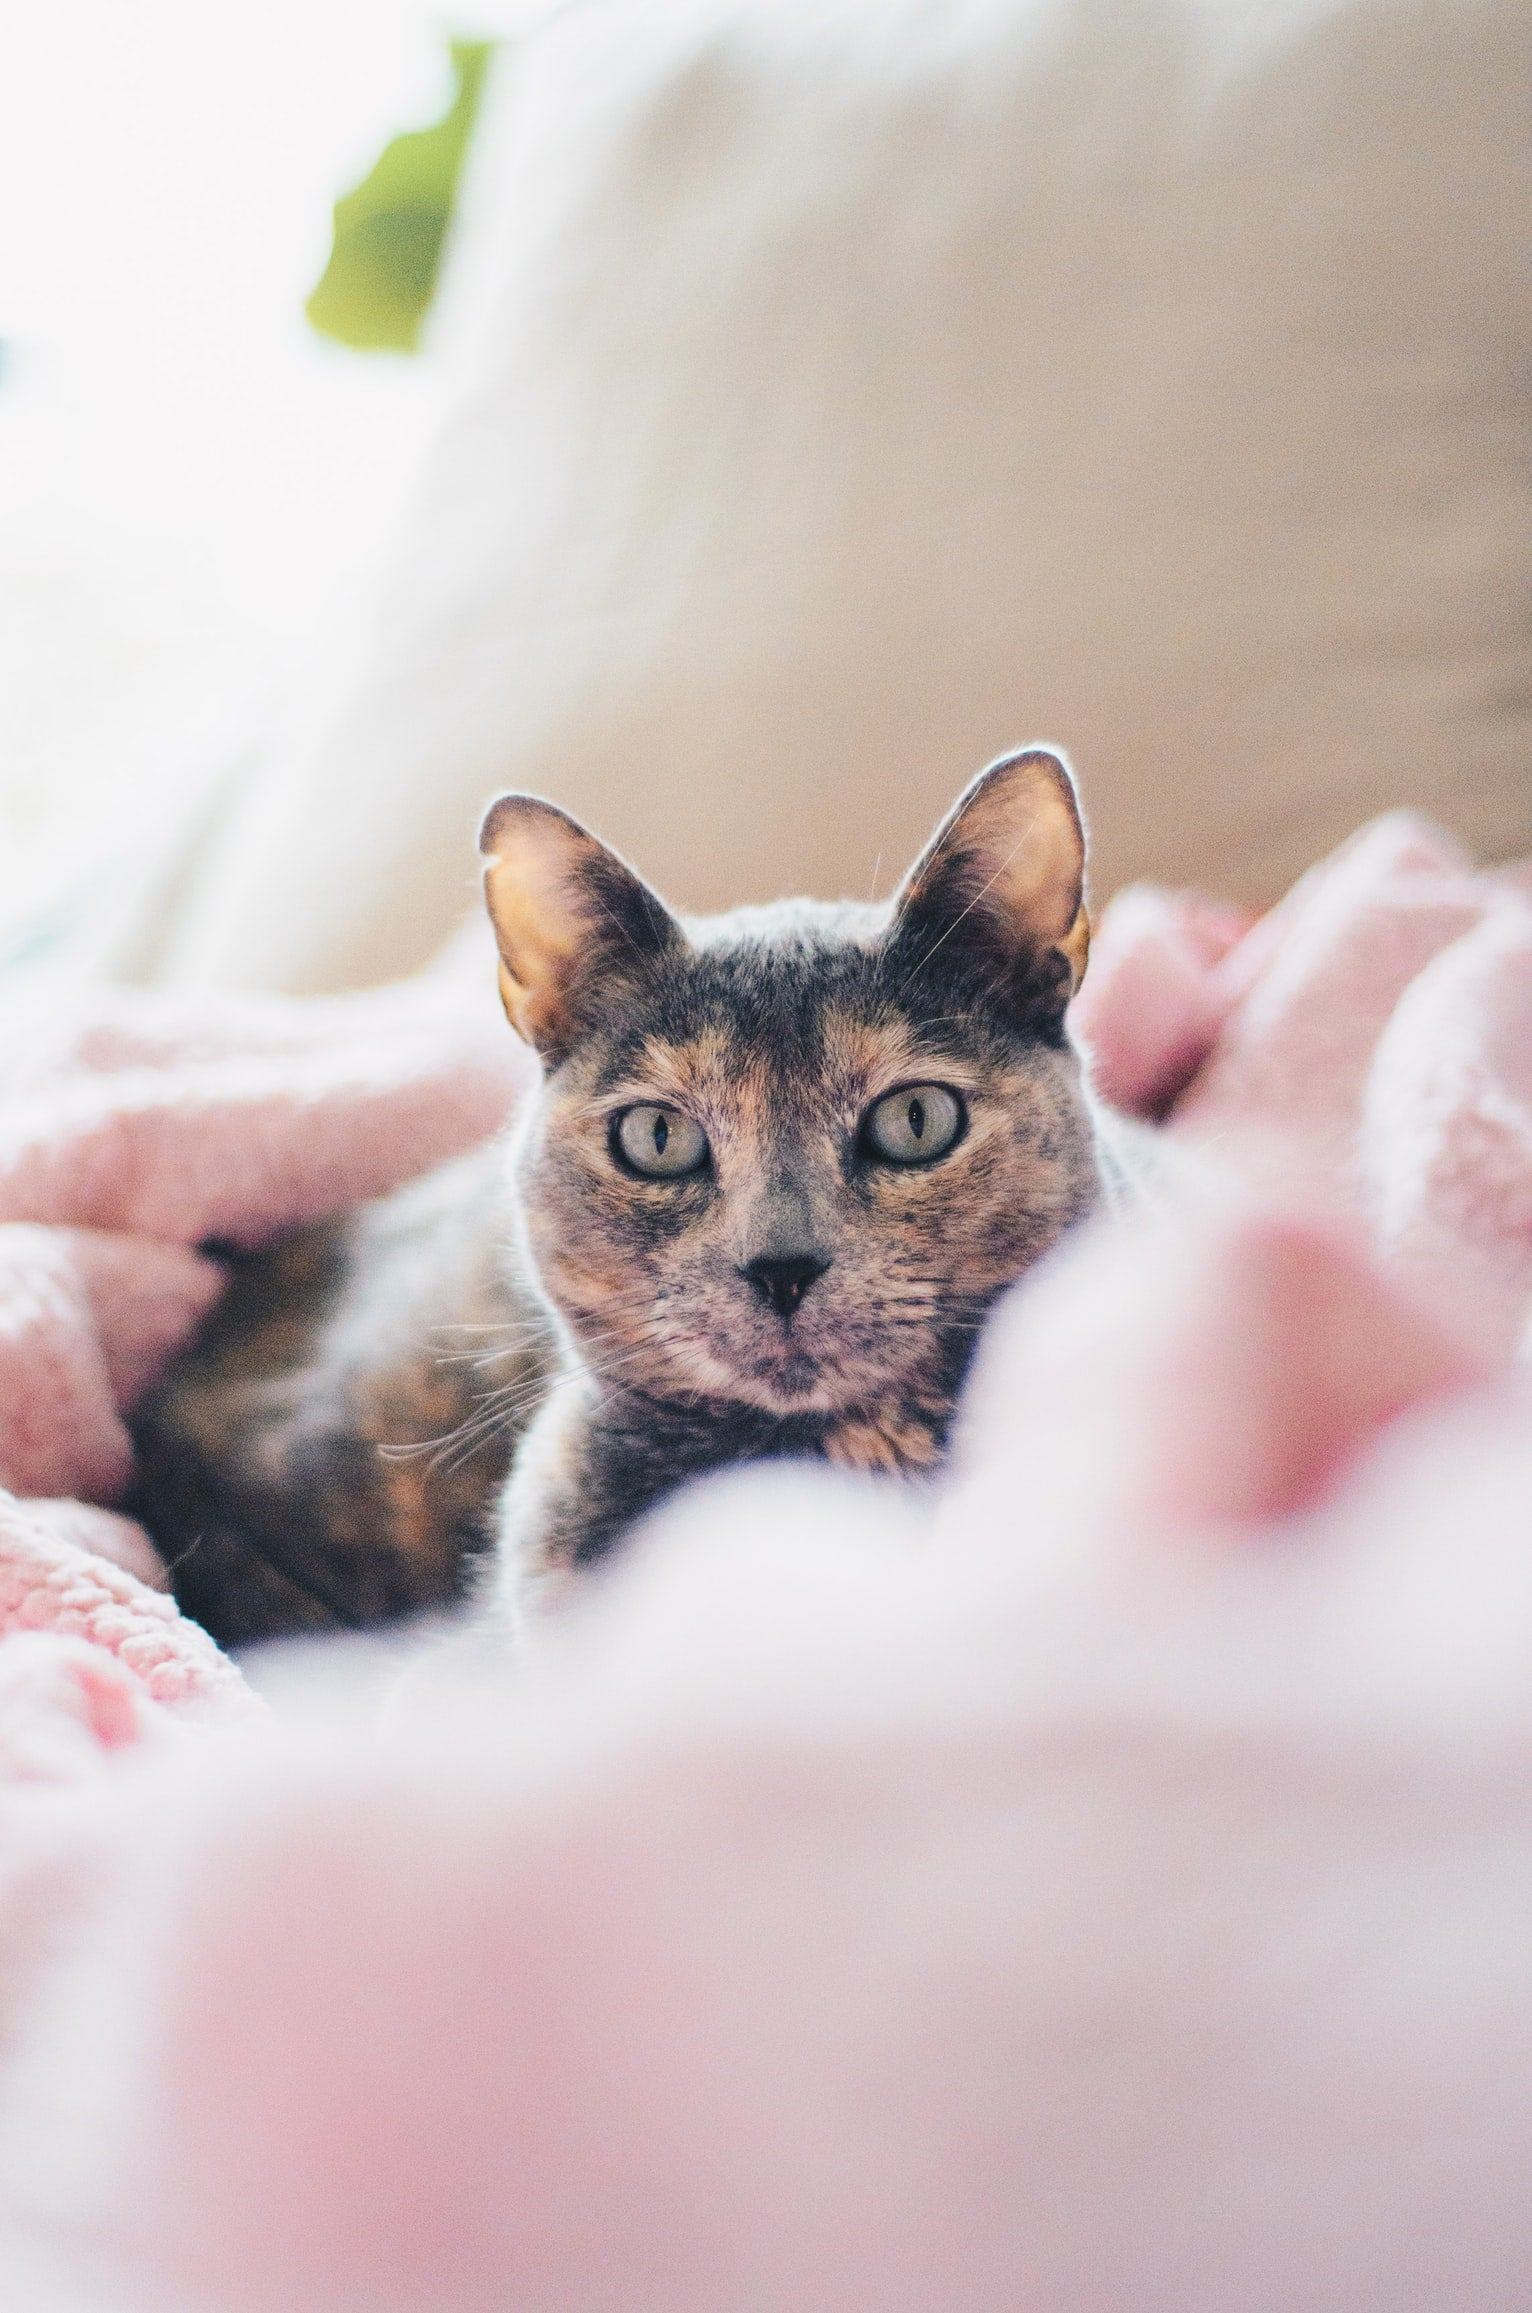 tortoiseshell cat in a pink blanket